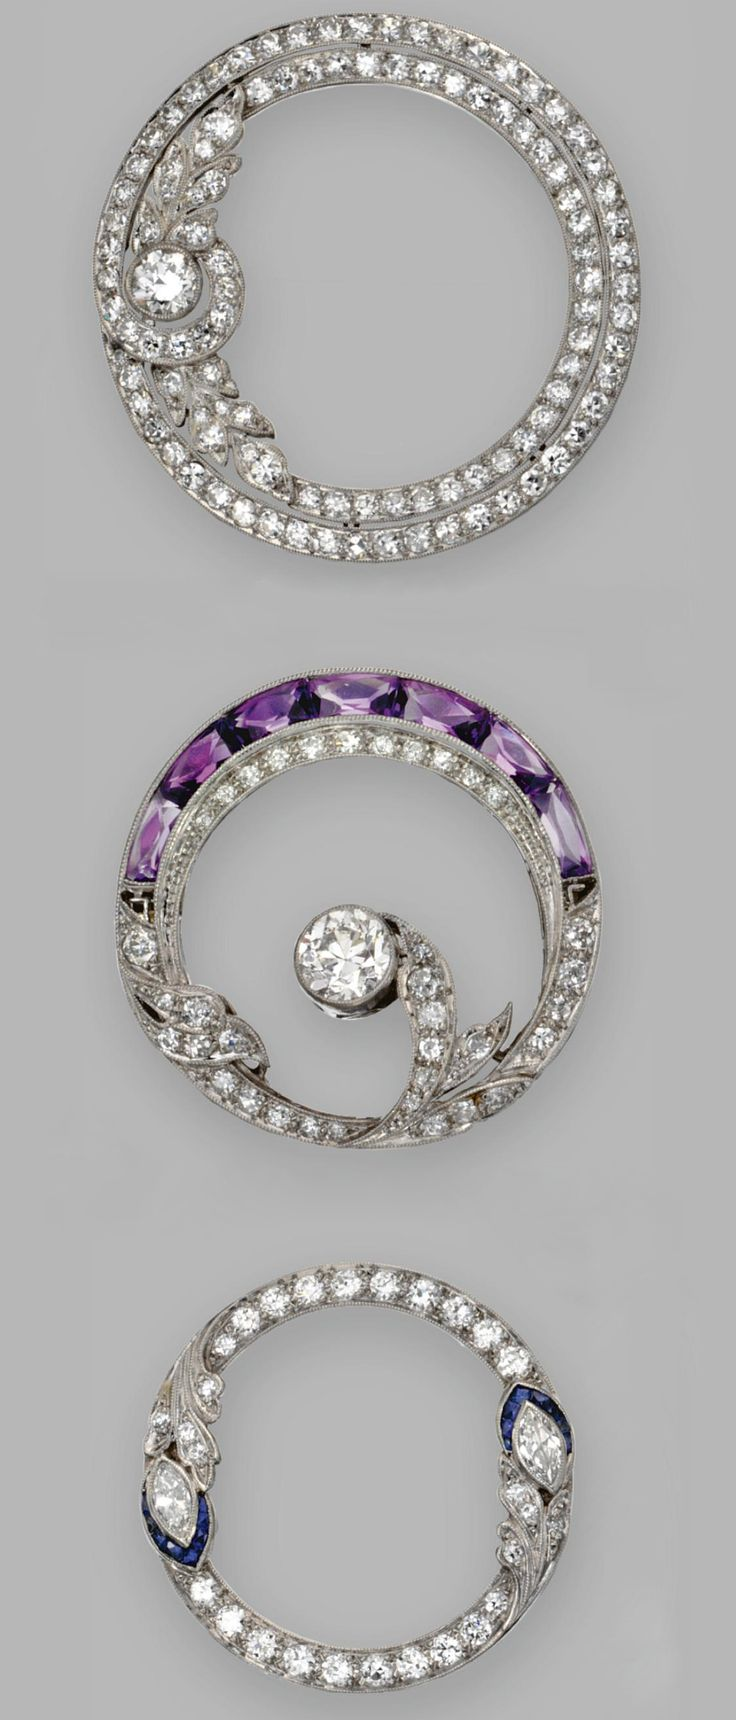 GROUP OF THREE COLORED STONE AND DIAMOND BROOCHES, 1930.